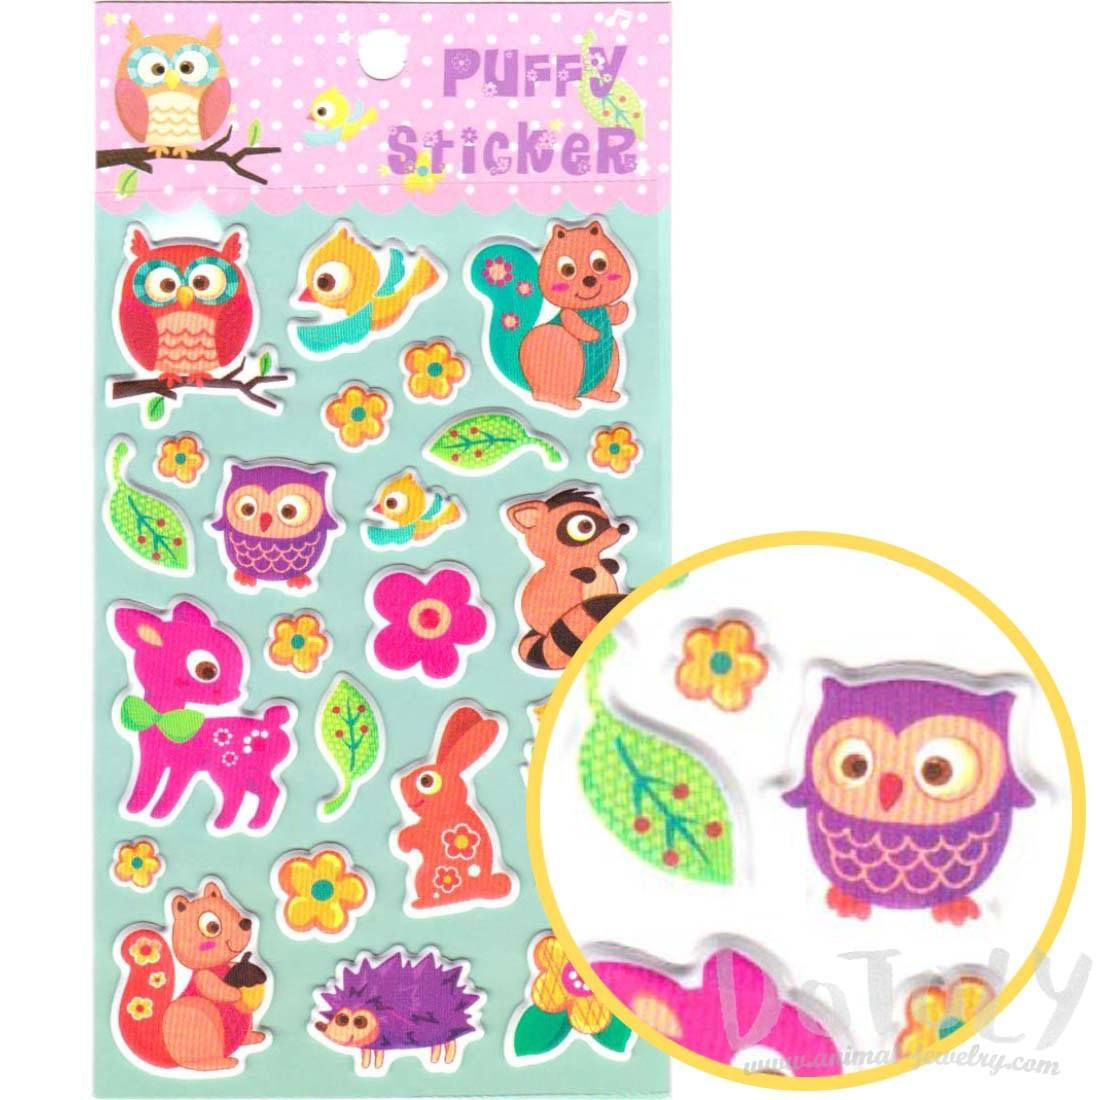 Cartoon Owl Birds Squirrel Rabbit Shaped Puffy Stickers